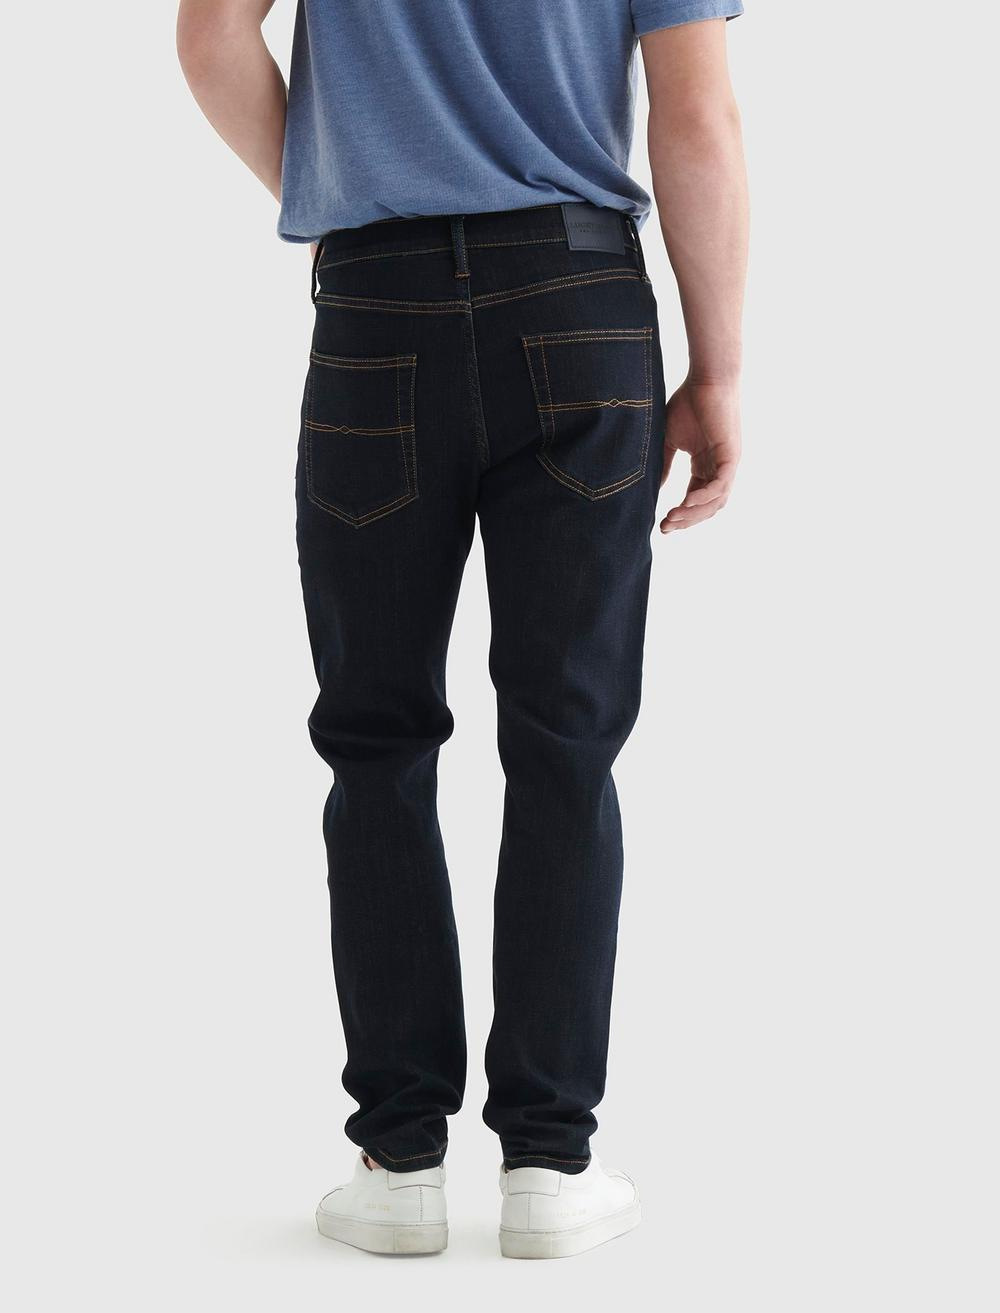 411 ATHLETIC TAPER COOLMAX STRETCH JEAN, image 4